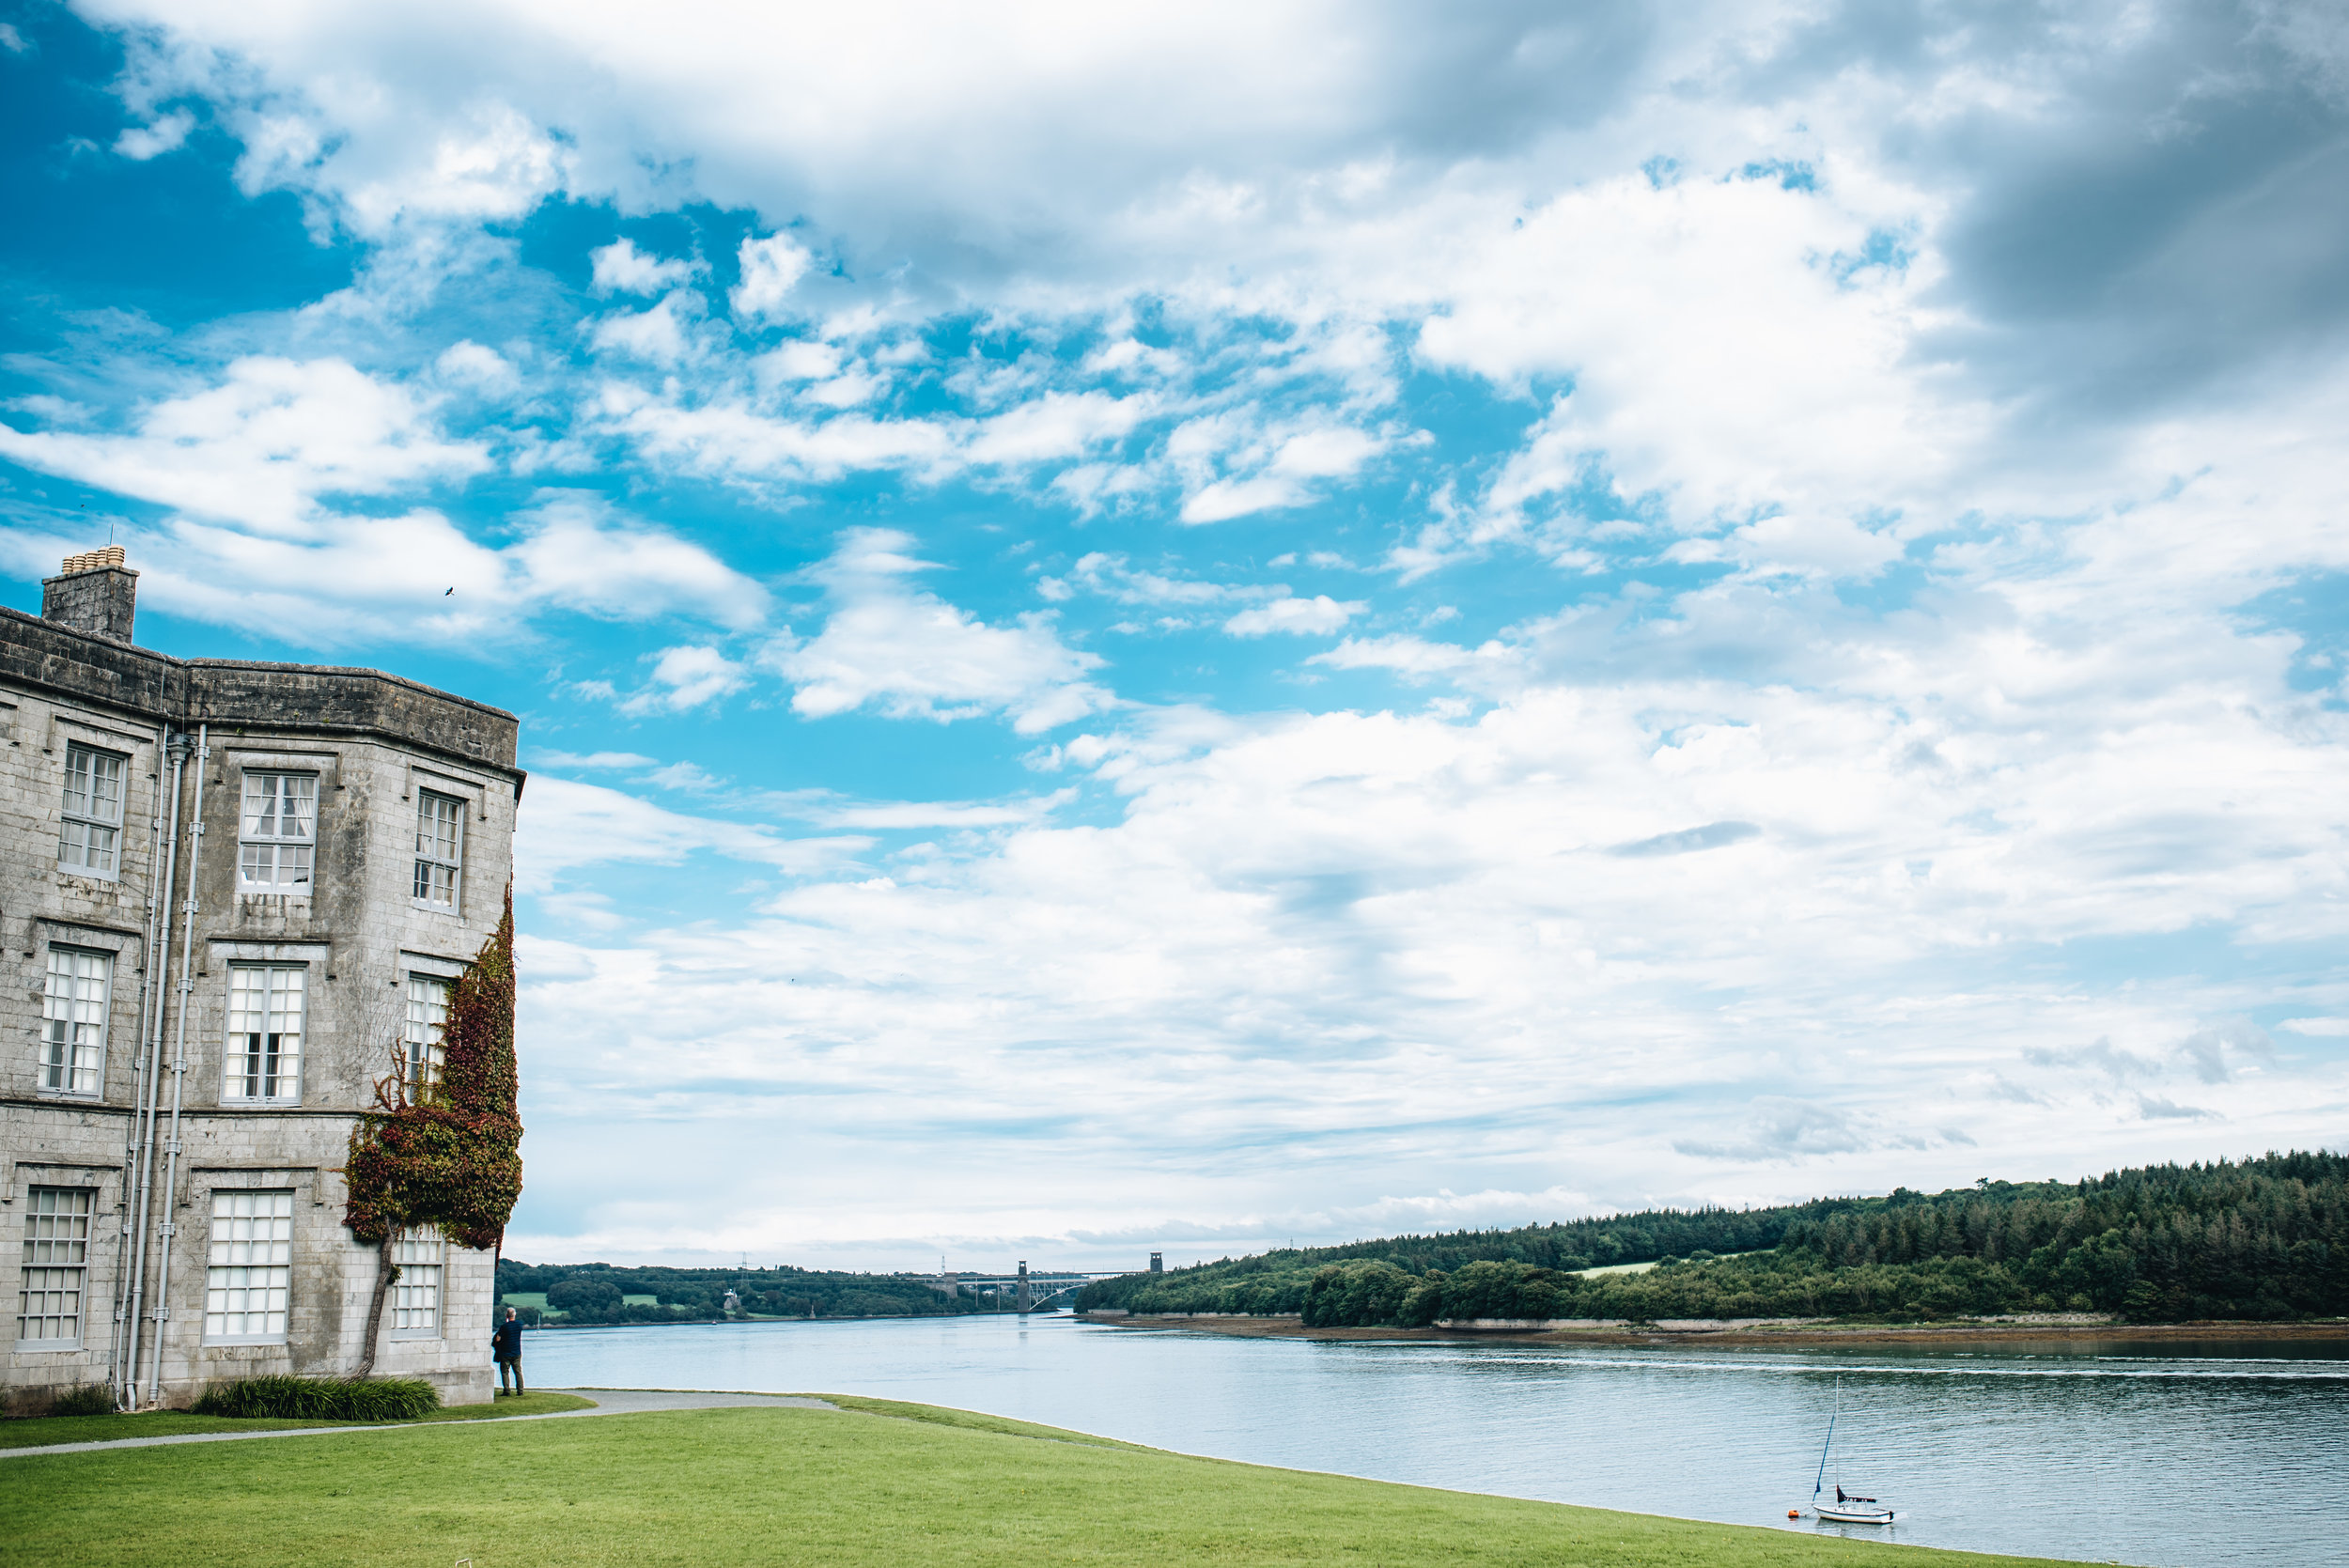 A holiday in North Wales - Plas Newydd